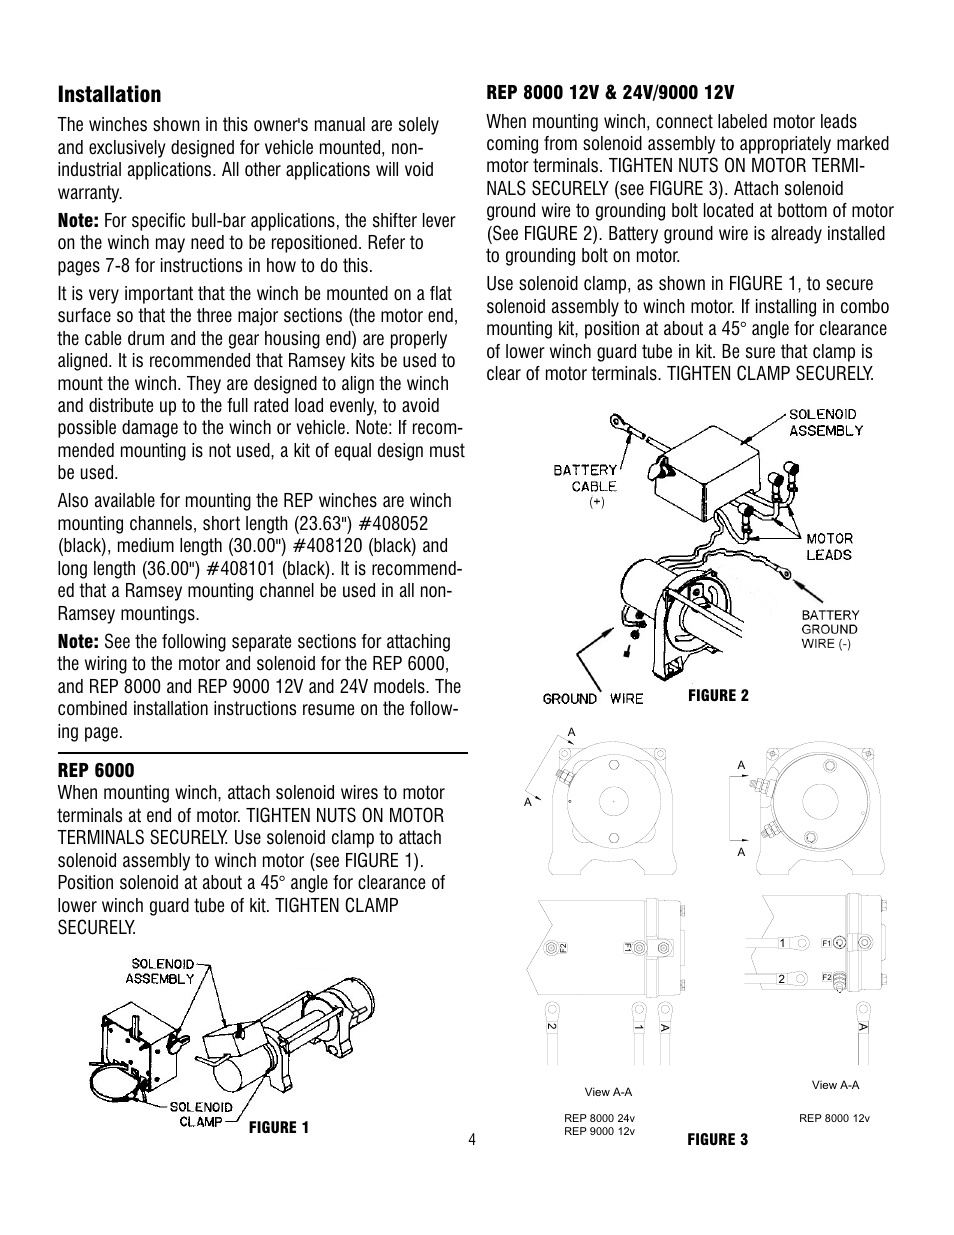 hight resolution of installation ramsey winch rep 6000 8000 9000 current user manual rh manualsdir com ramsey winch solenoid